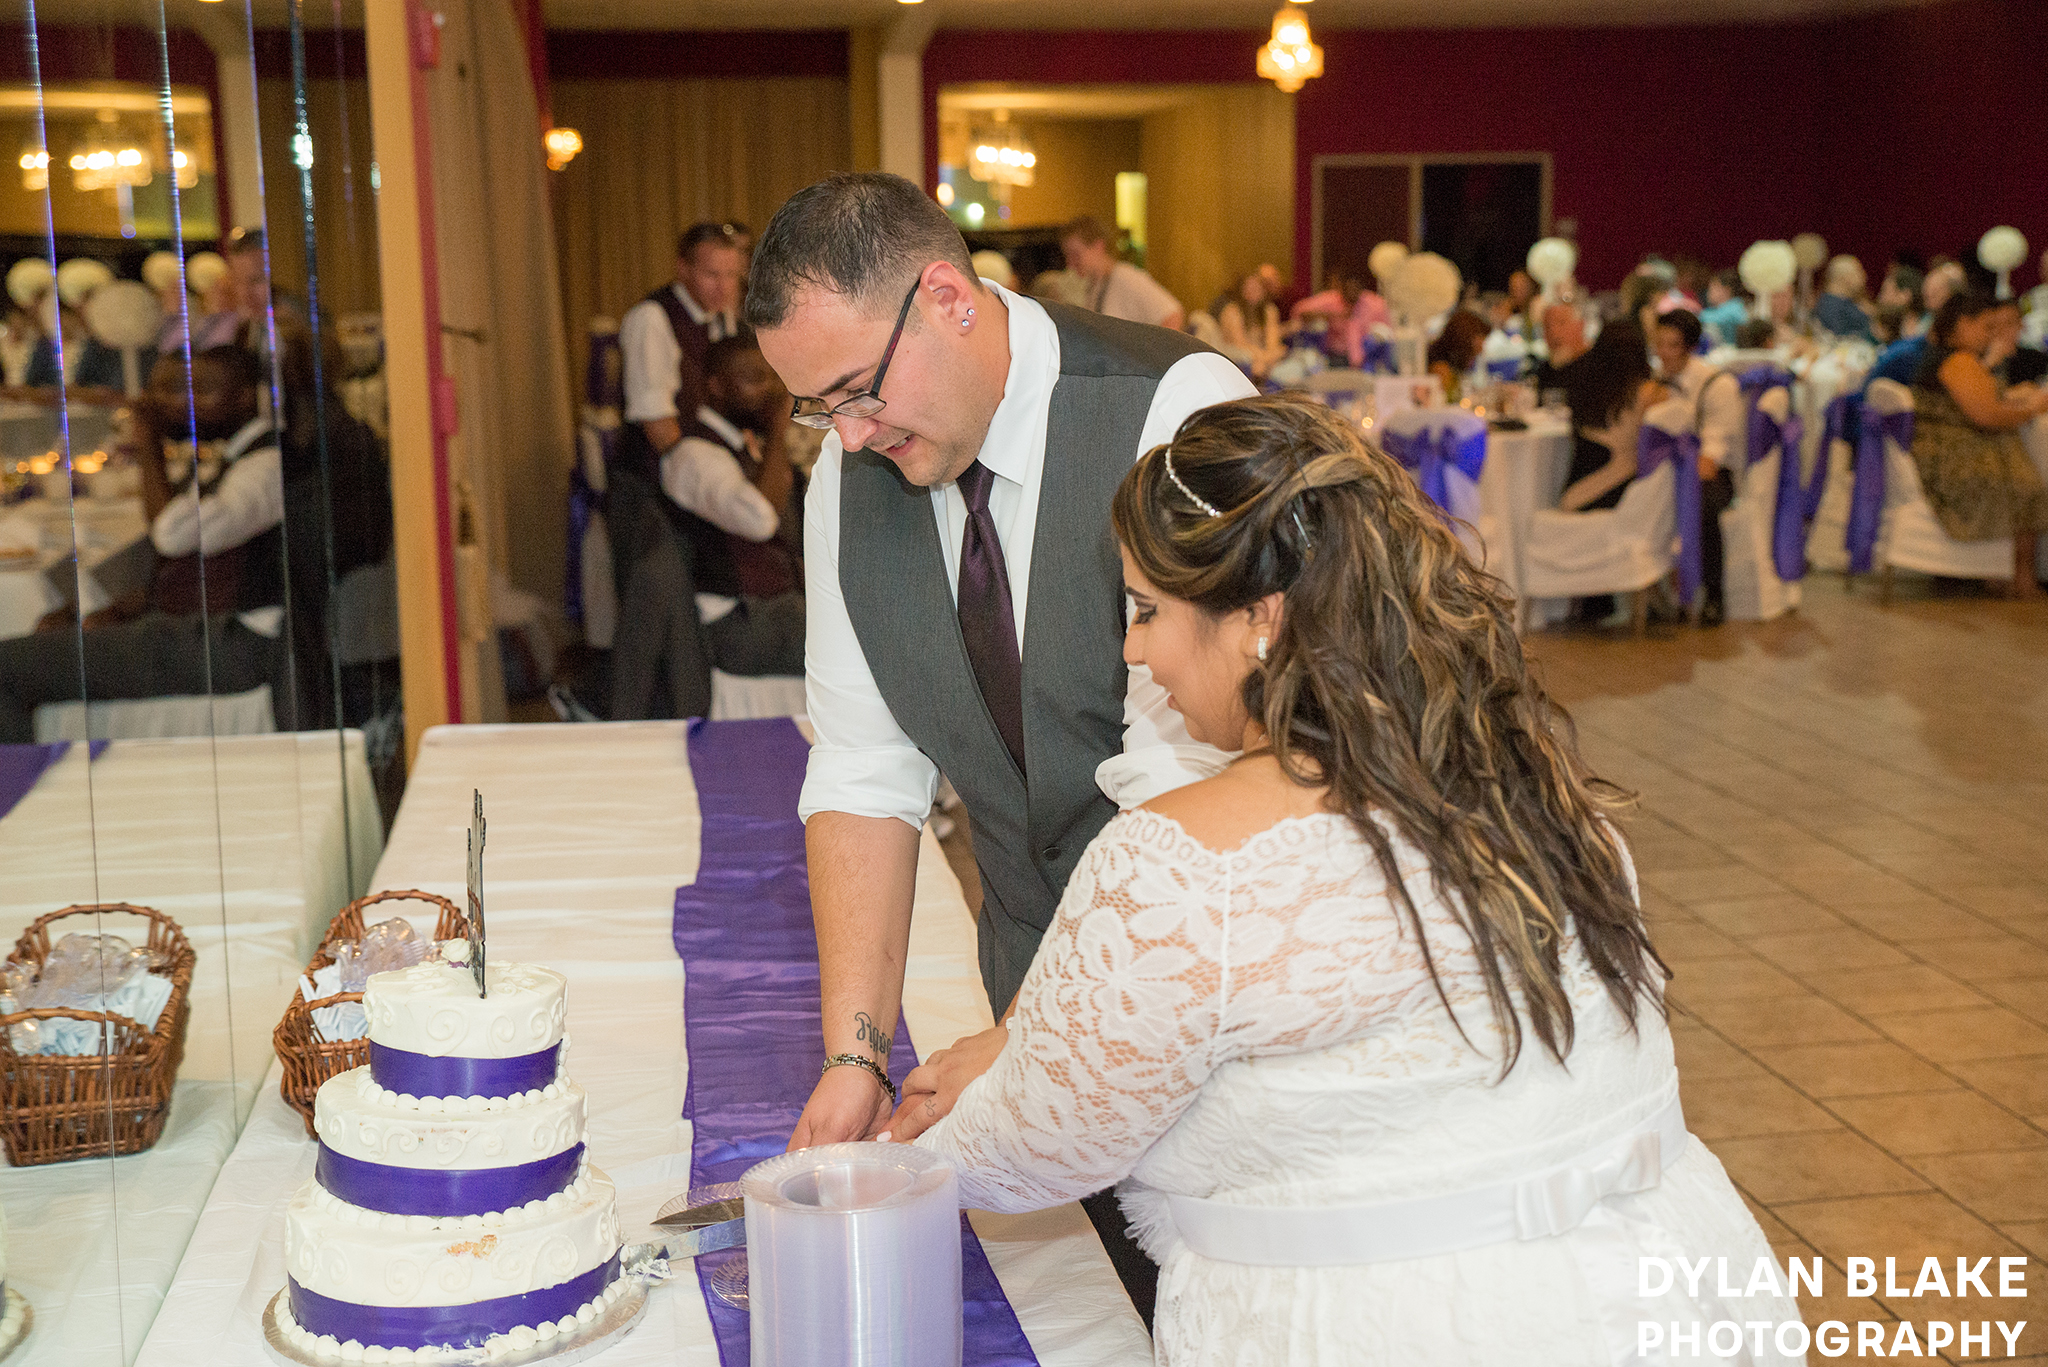 4-wedding-reception-club-royal-b&v-east-dundee-10.jpg